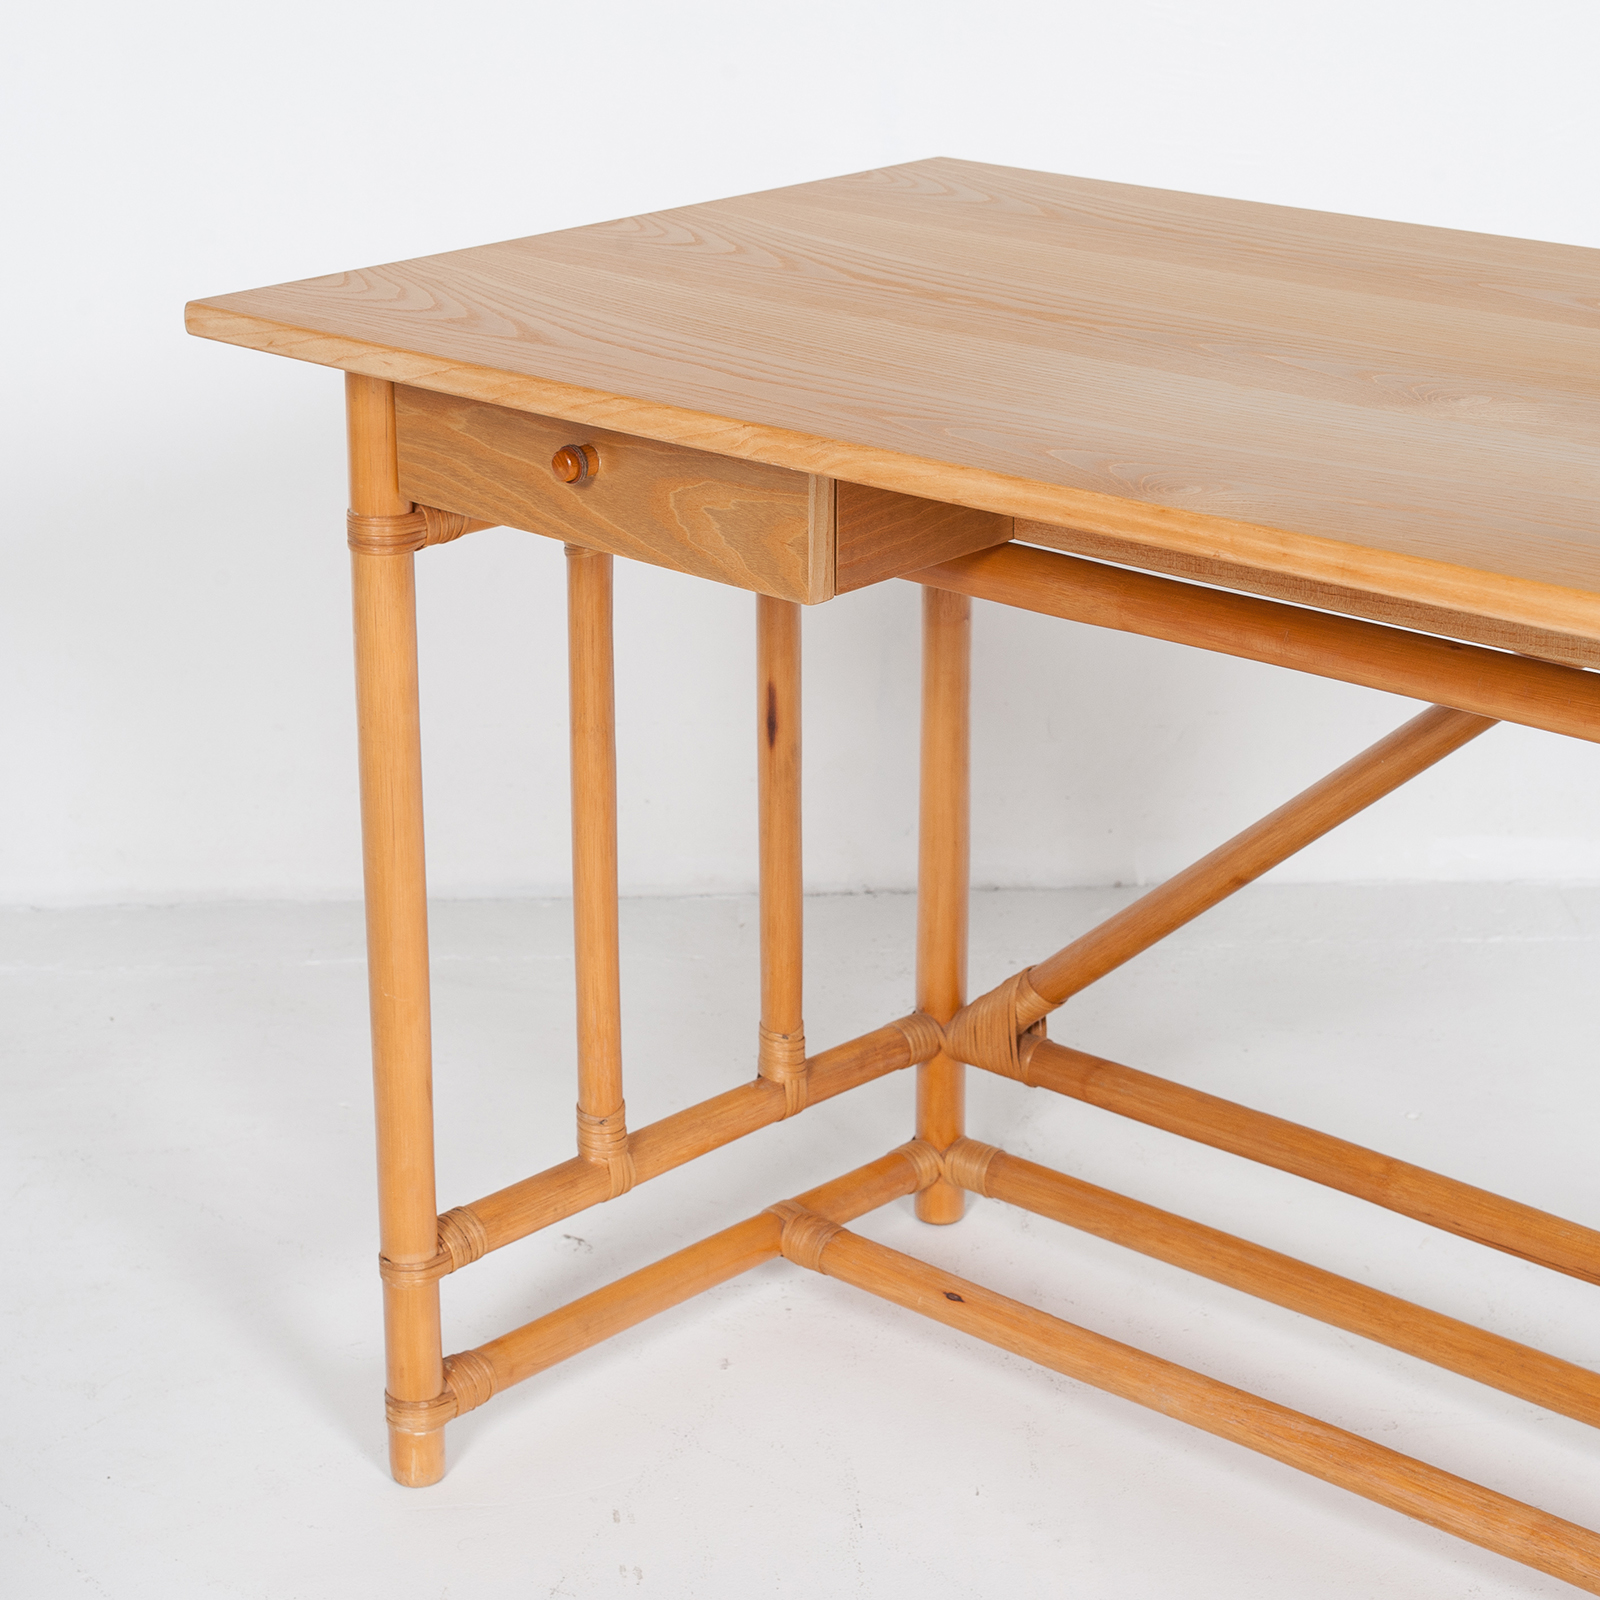 Desk And Chair In Bamboo (mt De 194 705 It)24